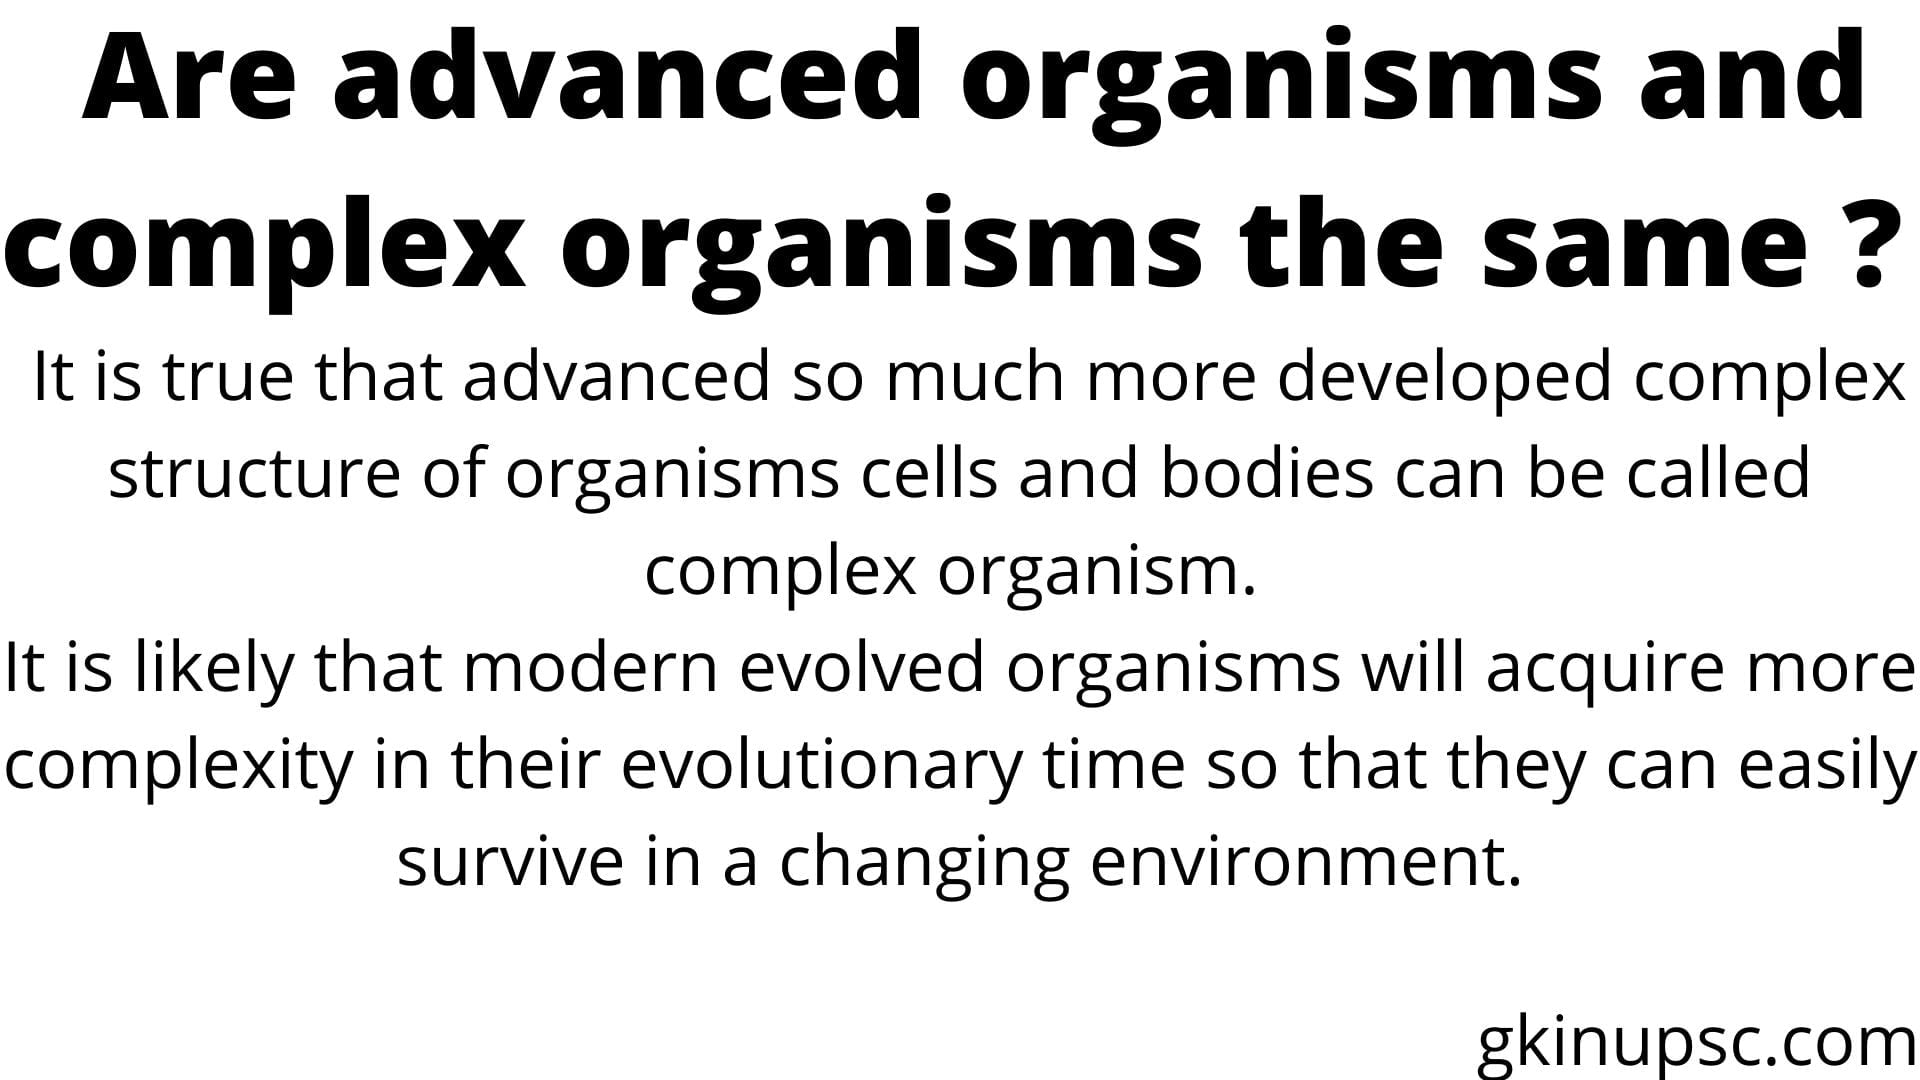 It is true that advanced so much more developed complex structure of organisms cells and bodies can be called complex organism. It is likely that modern evolved organisms will acquire more complexity in their evolutionary time so that they can easily survive in a changing environment.